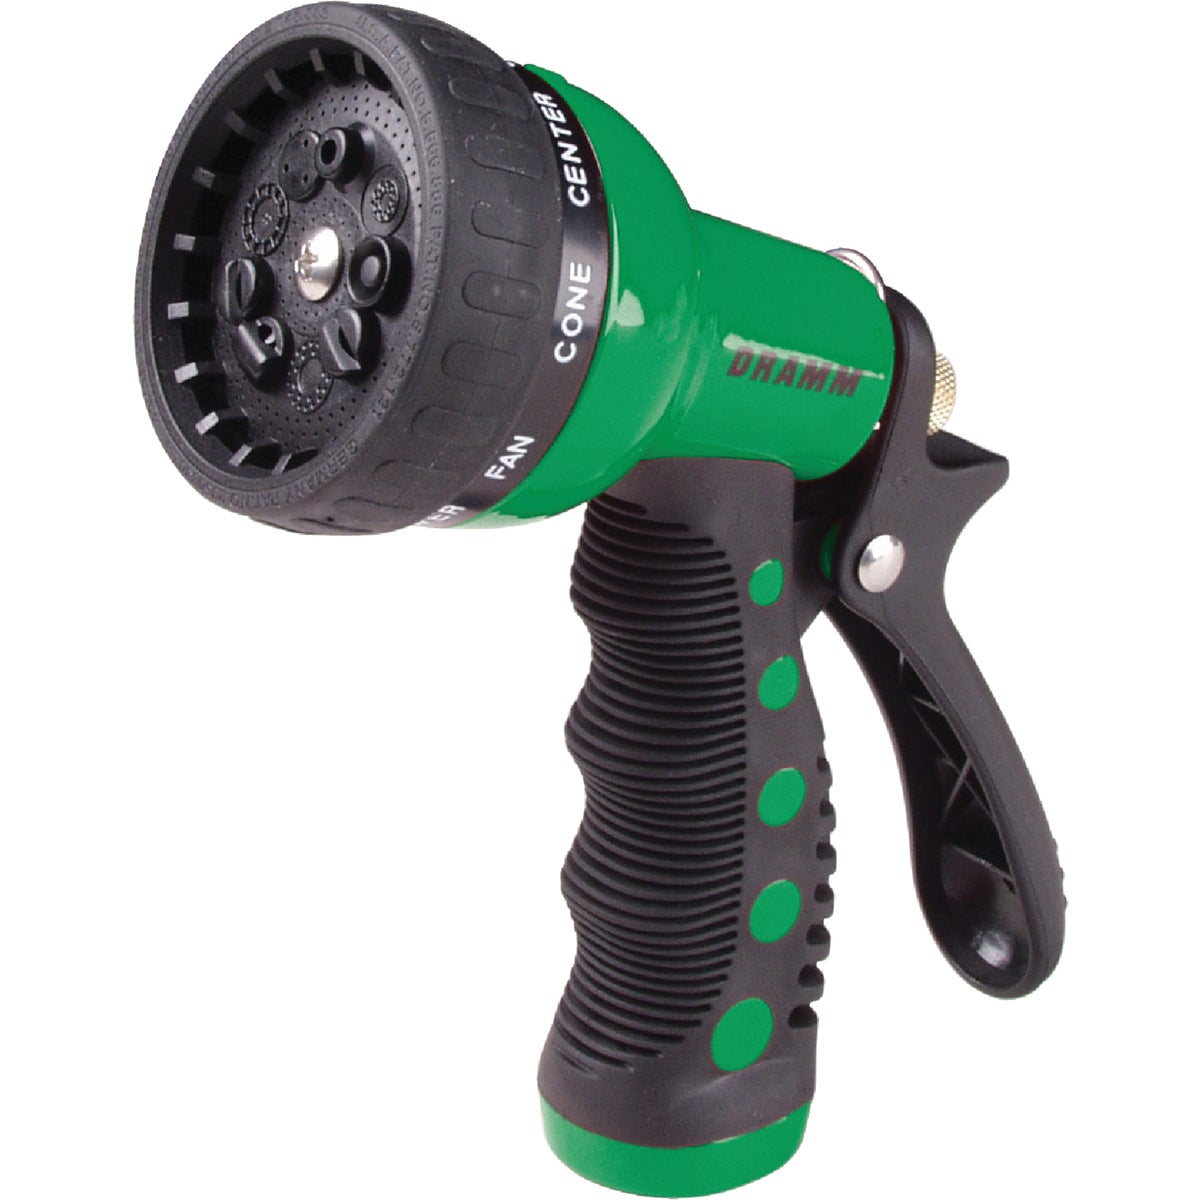 GREEN REVOLVER NOZZLE - 10-12704 by Dramm Corp